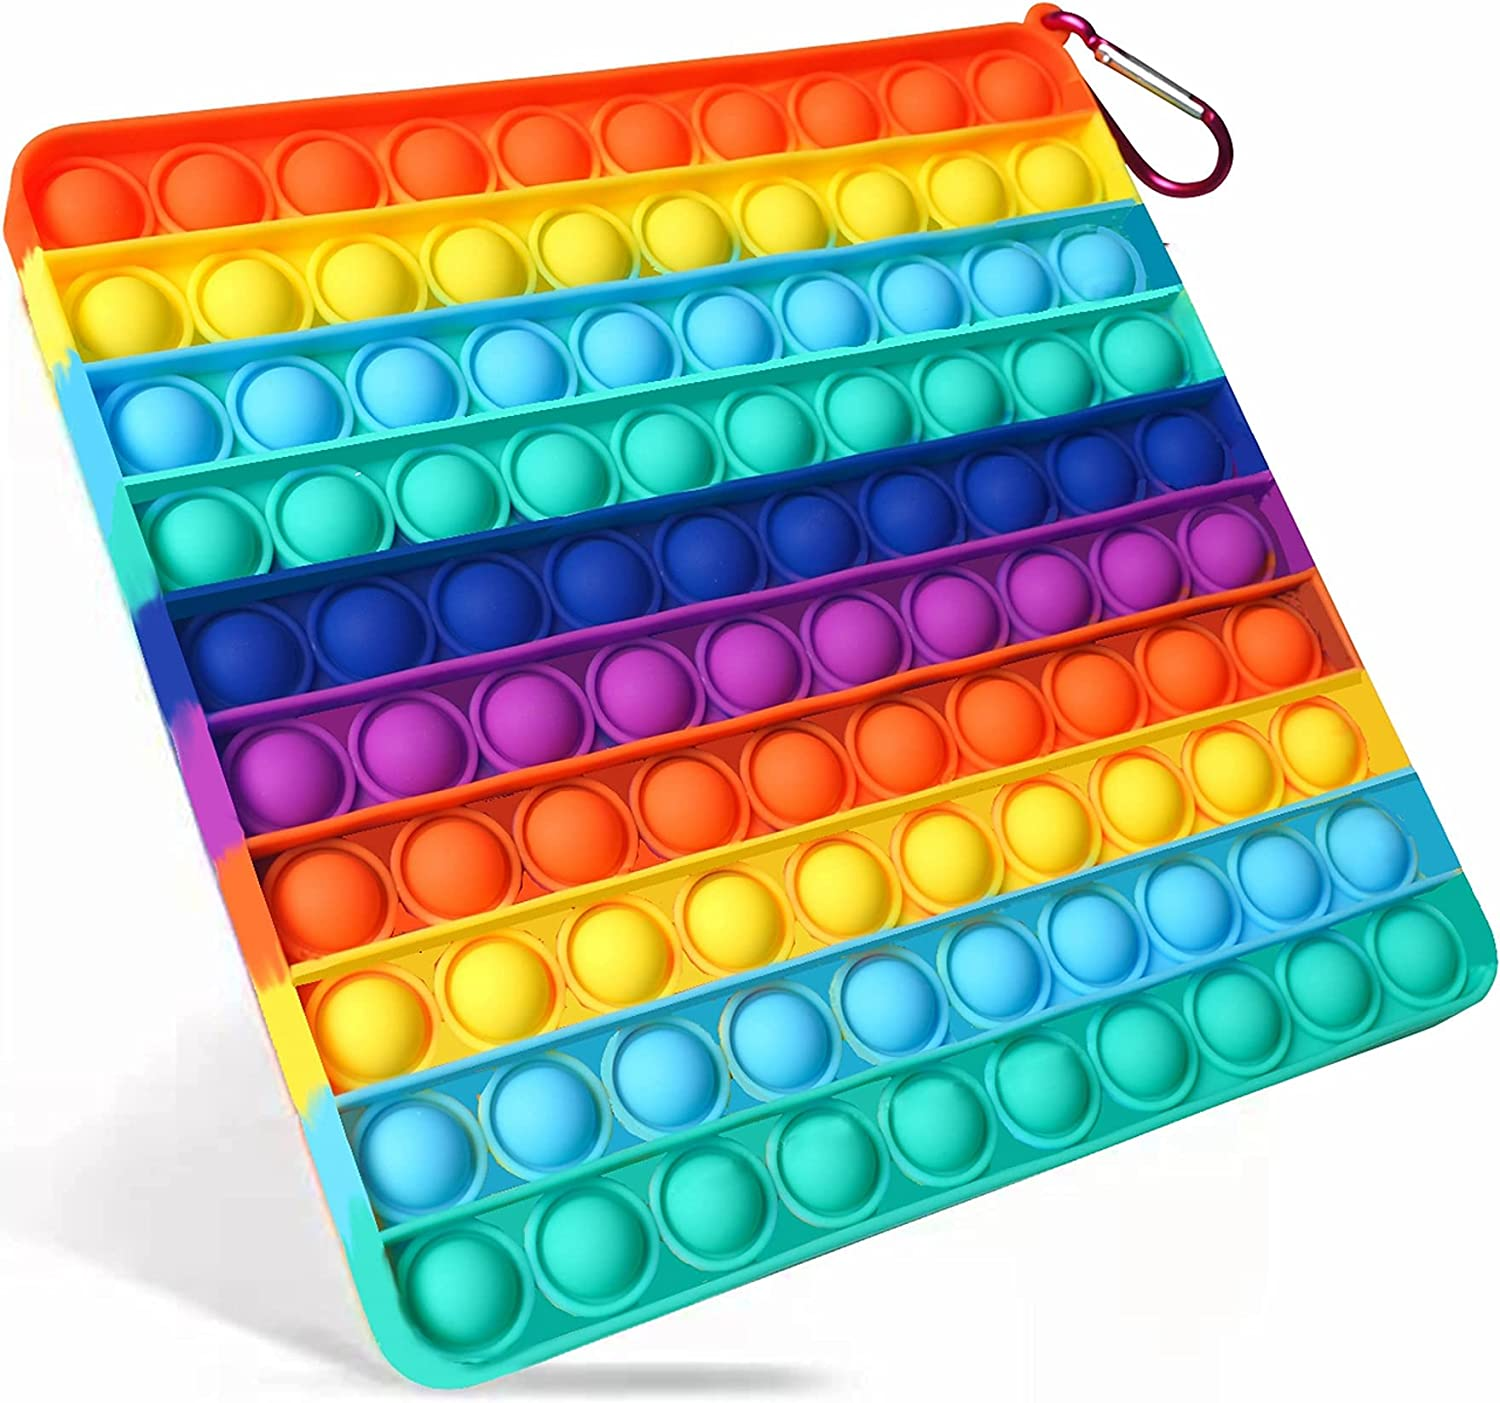 Big Size Push Pop Bubble Sensory Fidget Toys,100 Bubbles Stress Reliever Silicone Pressure Relieving Toy,for Kids Autism and Adult Anxiety Easy to Grasp Pop Silicone Toy (8 Inch,Rainbow,Square)